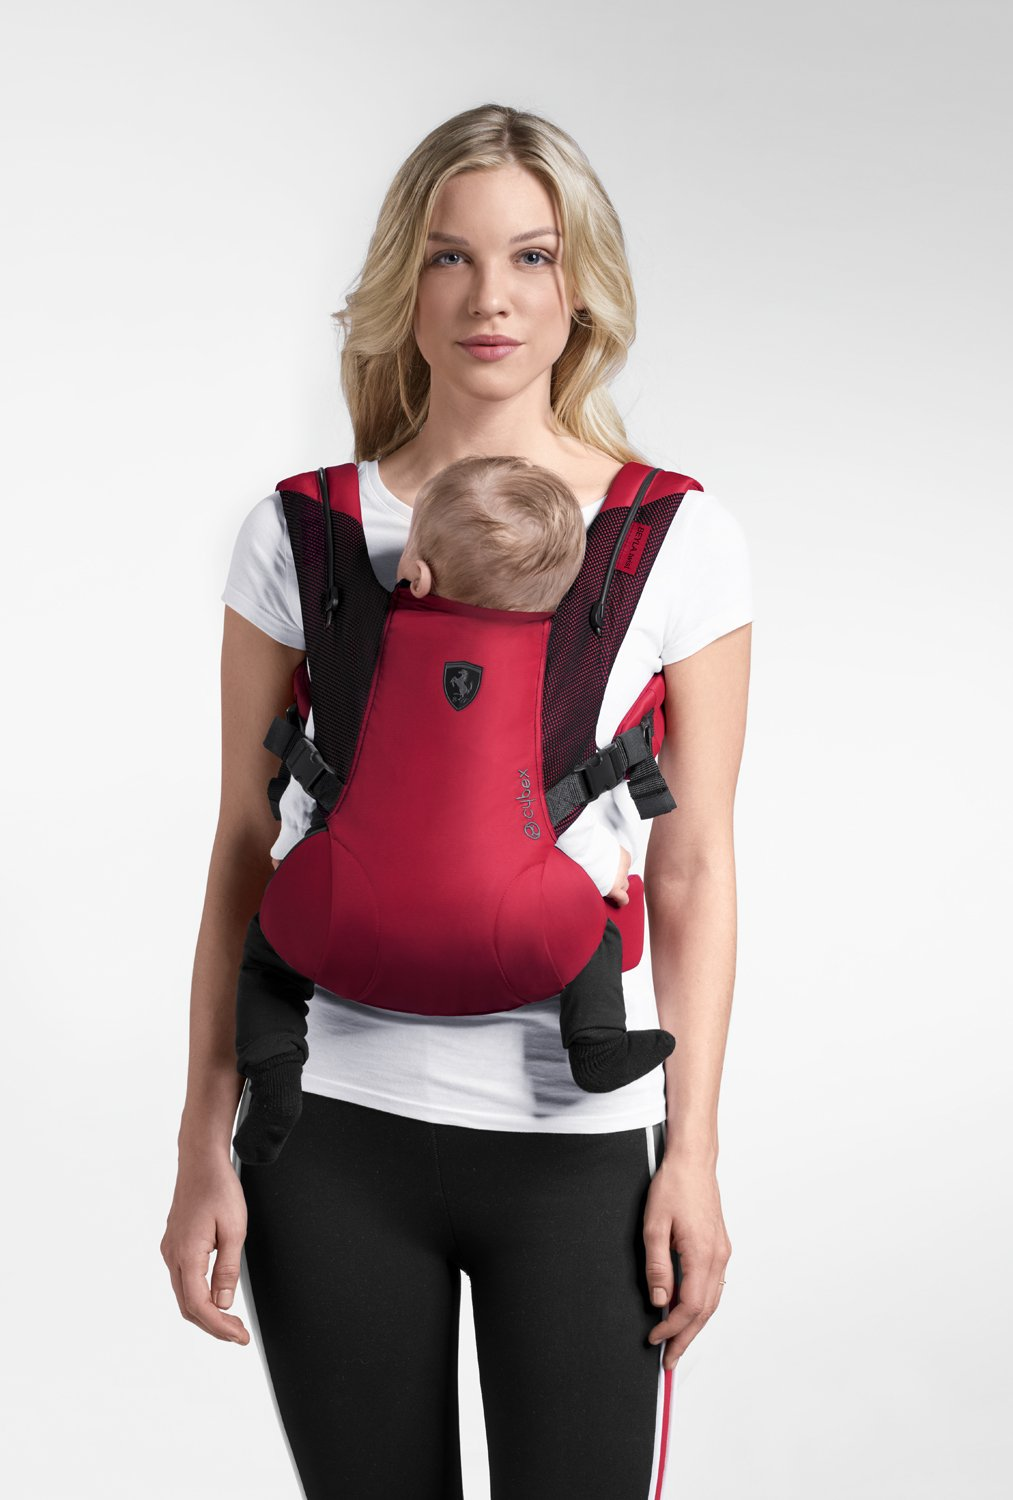 "CYBEX Gold BEYLA.twist Ergonomic Baby Carrier Scuderia Ferrari, From birth to approx. 2 years (approx. 3.5 - 15 kg), Victory Black  Comfortable and versatile adjustable baby carrier: For ergonomic carrying and healthy hip development in babies - Suitable from birth to approx. 2 years (approx. 3.5 - 15 kg), Recommended by the ""International Hip Dysplasia Institute"" Quick and easy putting on/taking off due to practical buckle system, Individually and continuously adjustable, Optimum wearing safety due to safety buckle on the waist belt Width and height-adjustable belt for individual adaptability, Multi-functional head and neck support, Promotes healthy development of the joints through natural squat position 5"